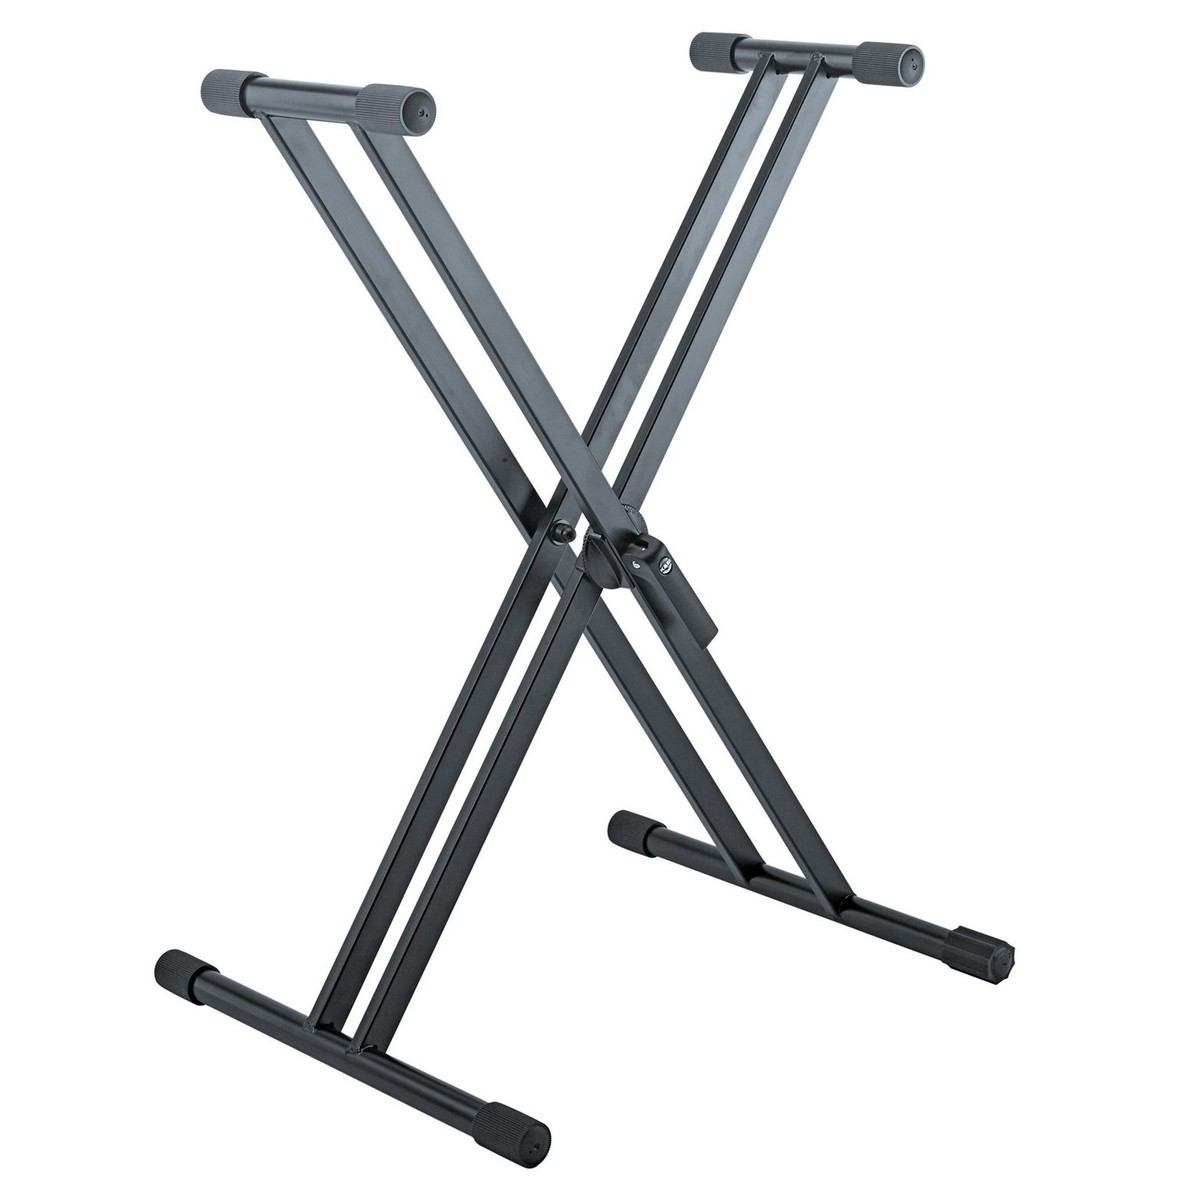 K&M 18993 X Frame Keyboard Stand, Black at Gear4music.com